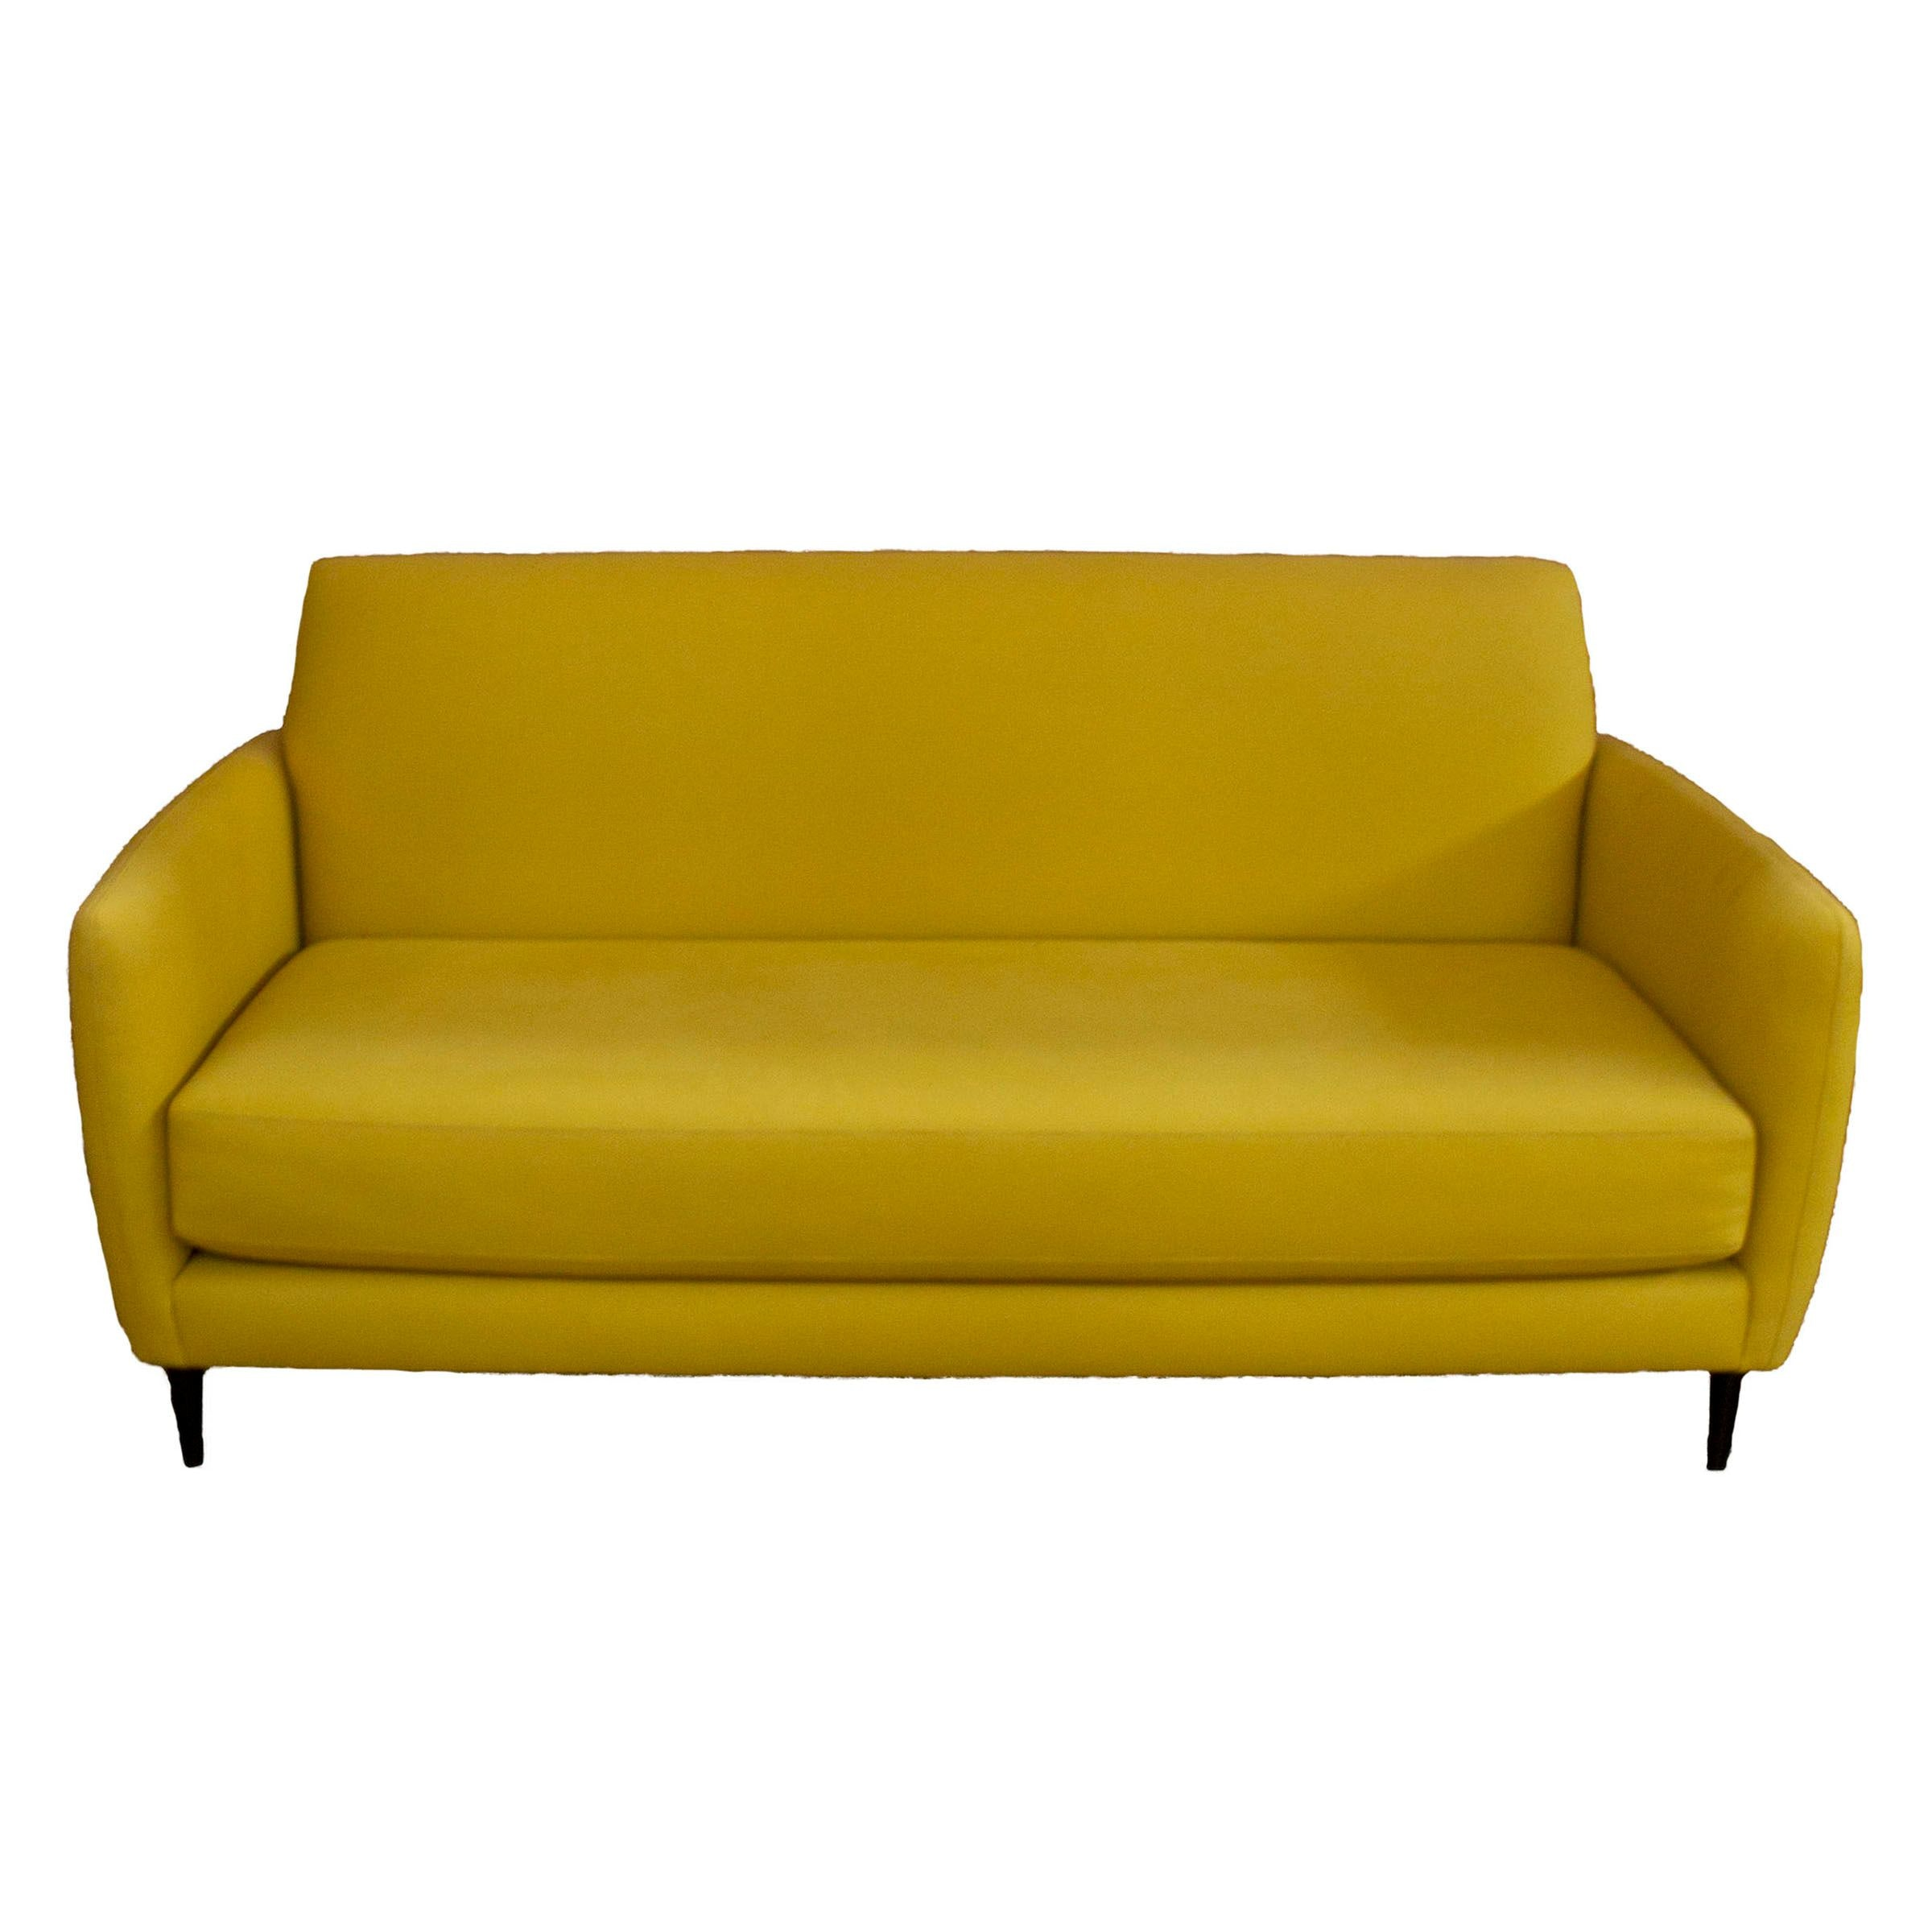 "Contemporary Modernist Style ""Parlour"" Sofa by CB2"